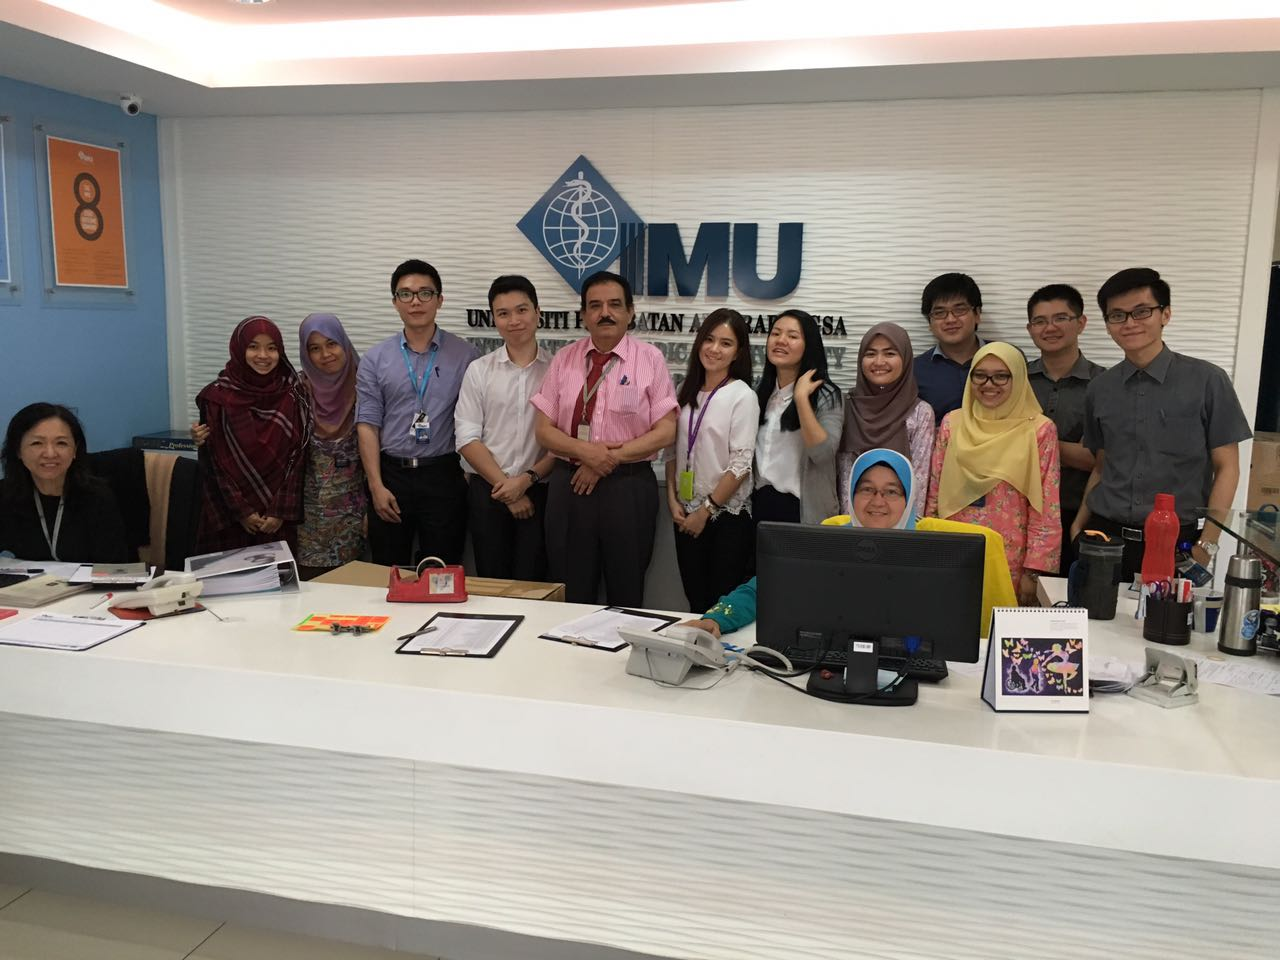 IMU Medical Alumnus at the IMU Clinical campus